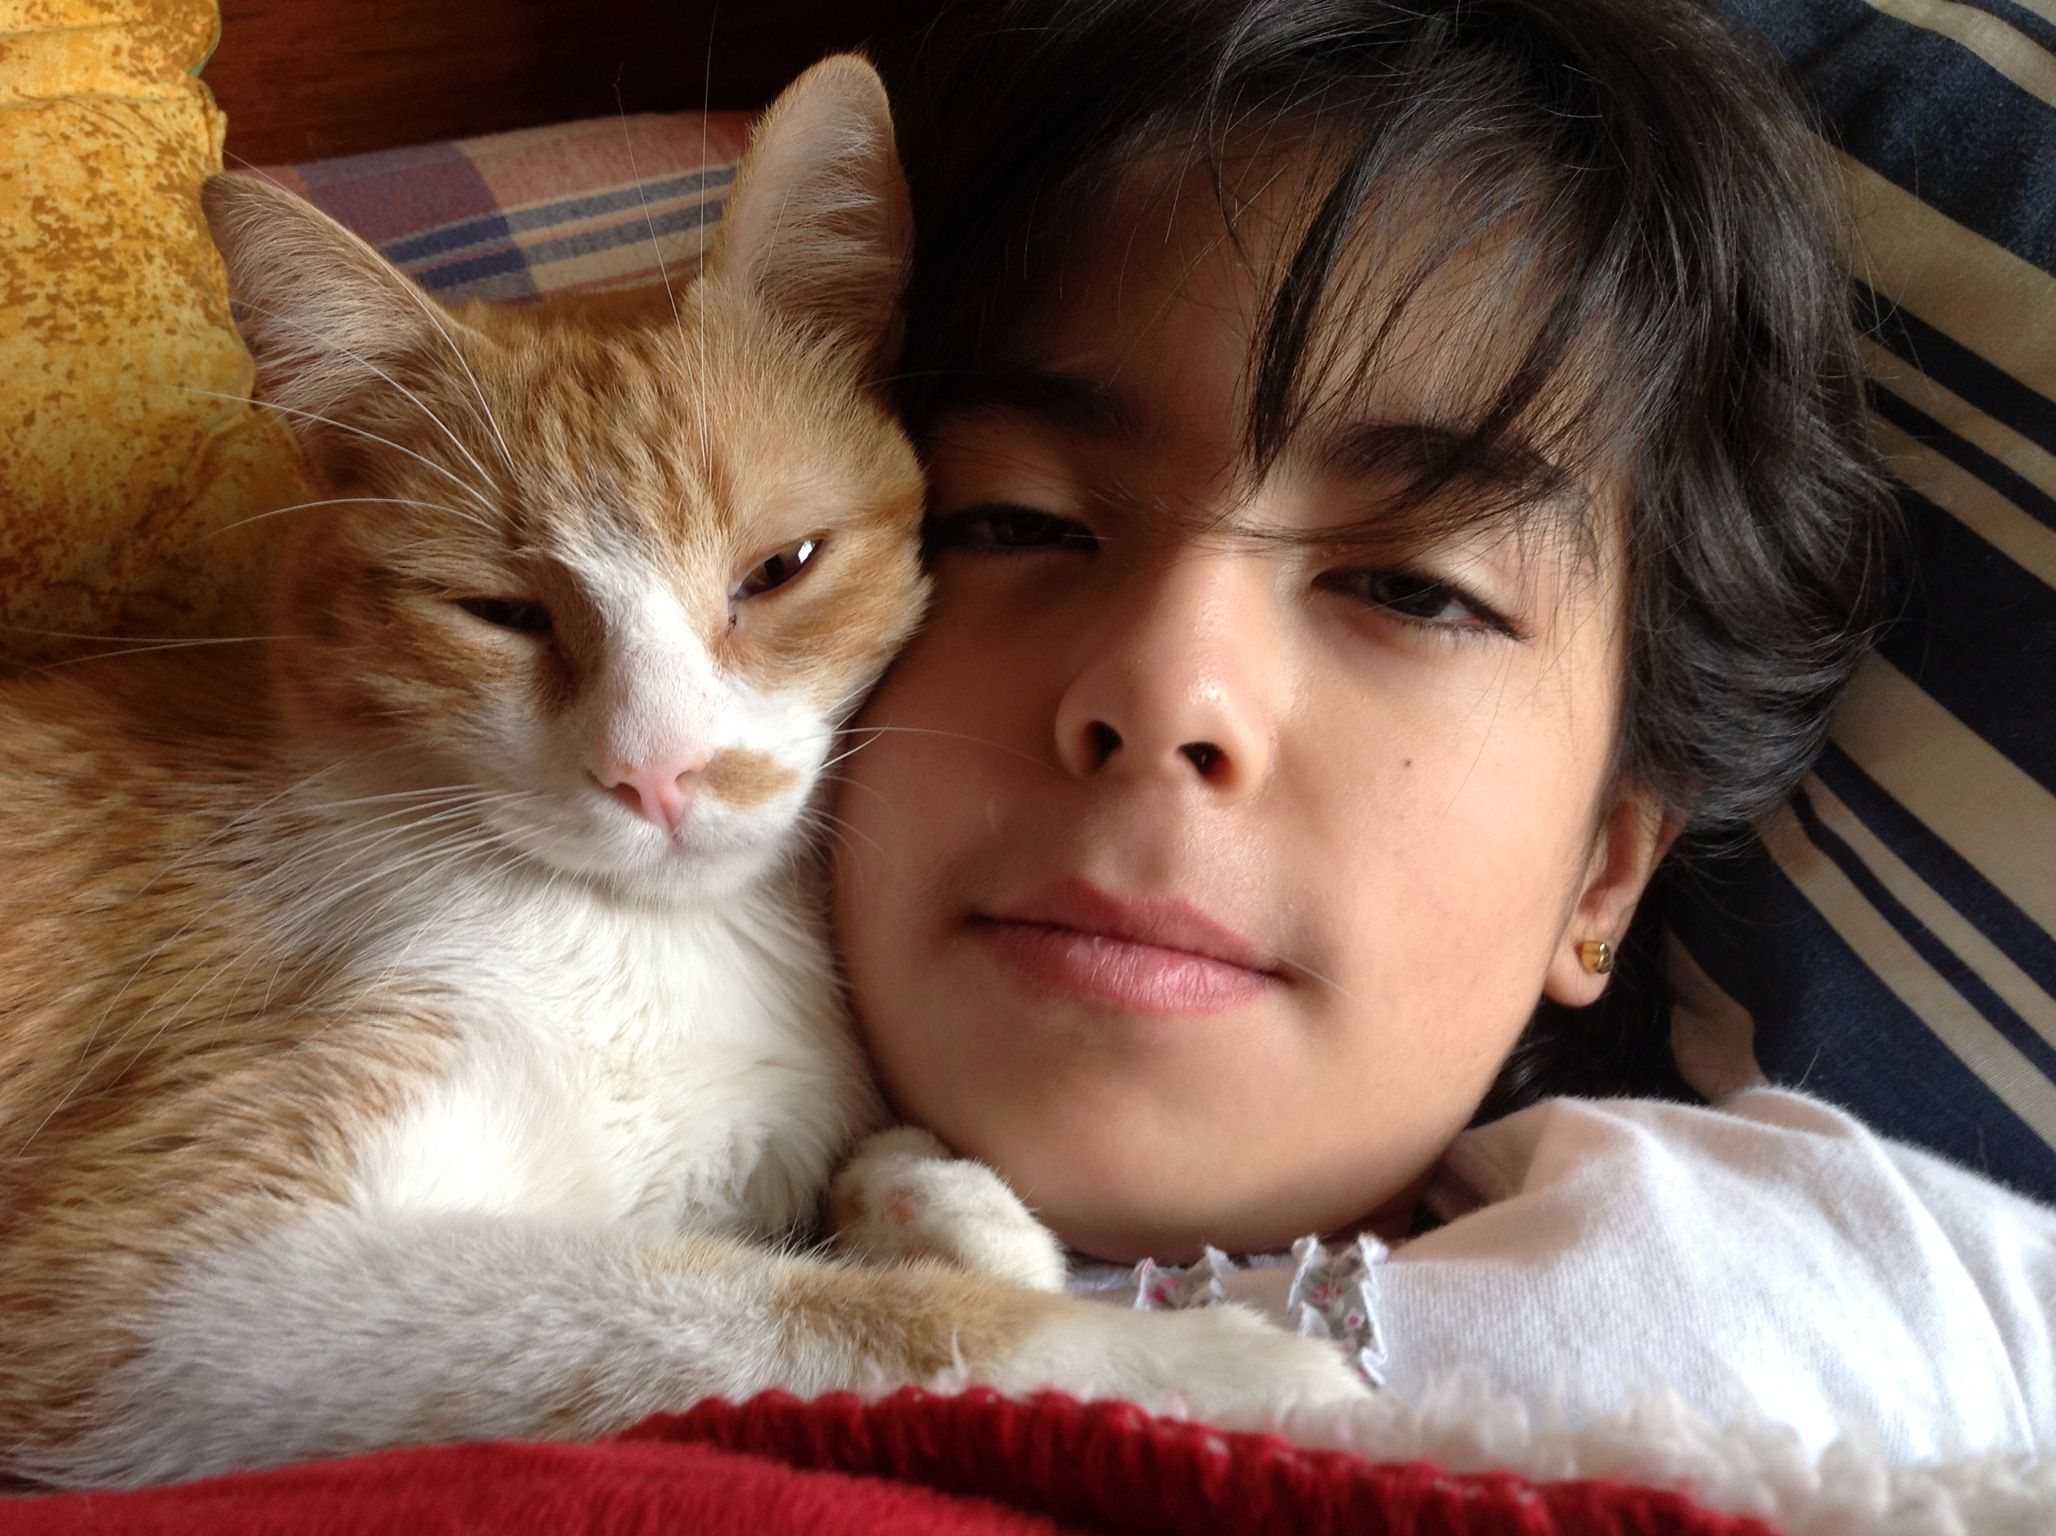 Pet Love Kid And Cat Kids With Cats D Pinterest